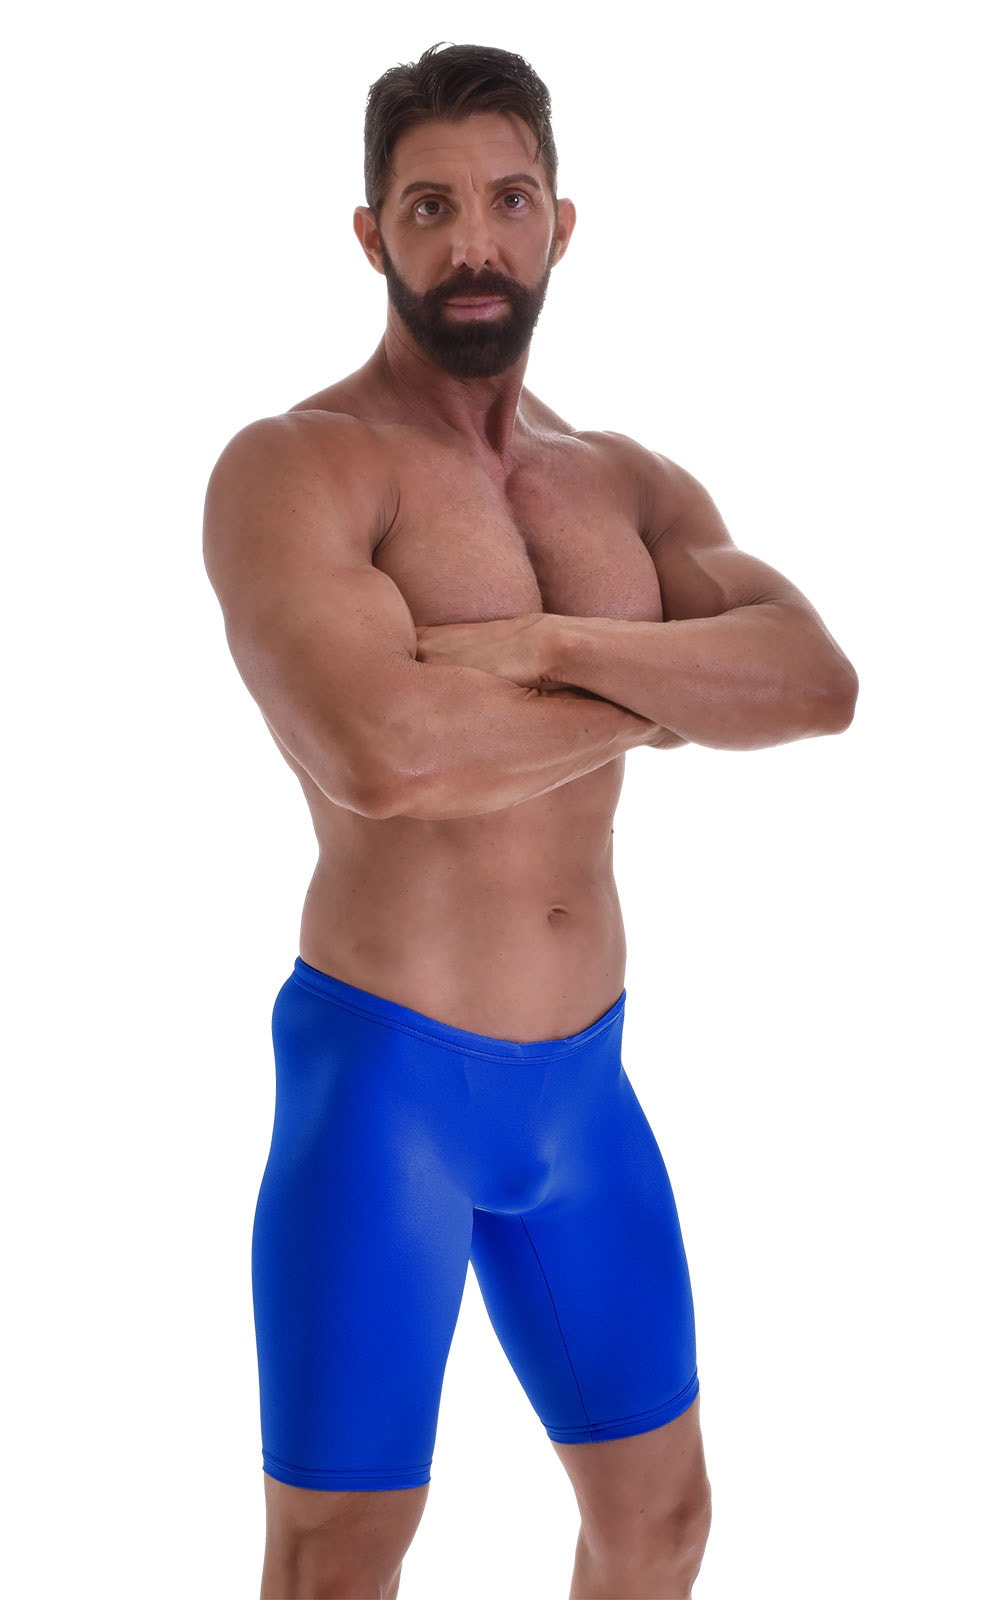 Swim-Dive Competition Watersports Shorts in Wet Look Royal Blue 5